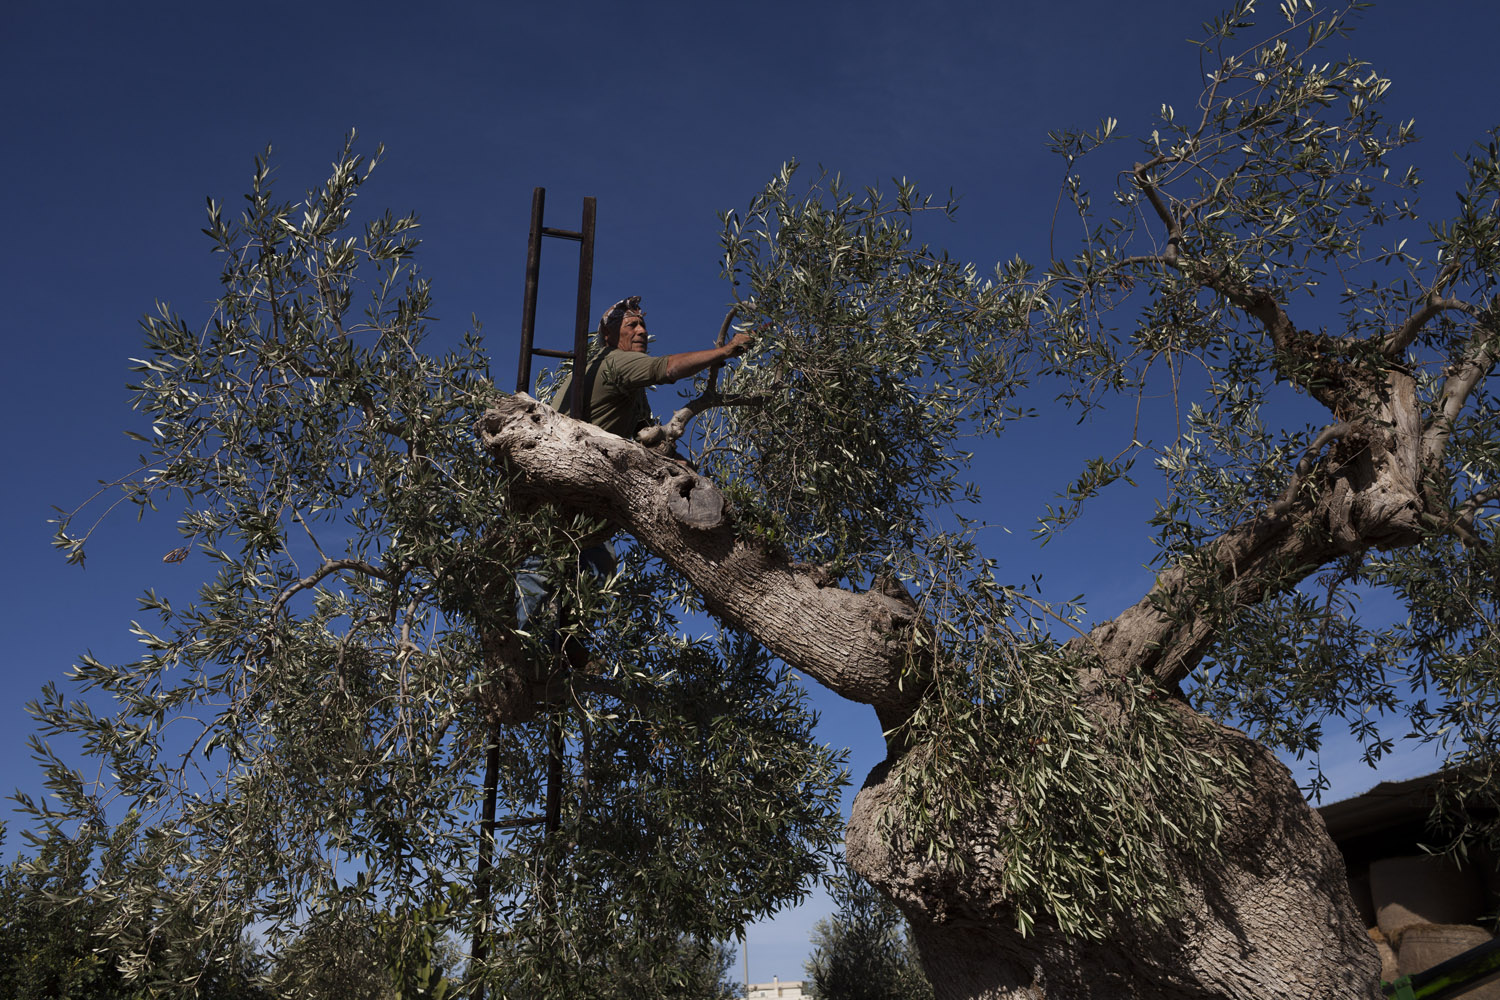 Pruning olive trees in the countryside of Fasano. Techniques such as pruning are extremely important to the trees' health, making up much of the cost of olive oil production, and have declined as farmers have been forced to cut costs because of this commodity's chronically low prices. (2017)